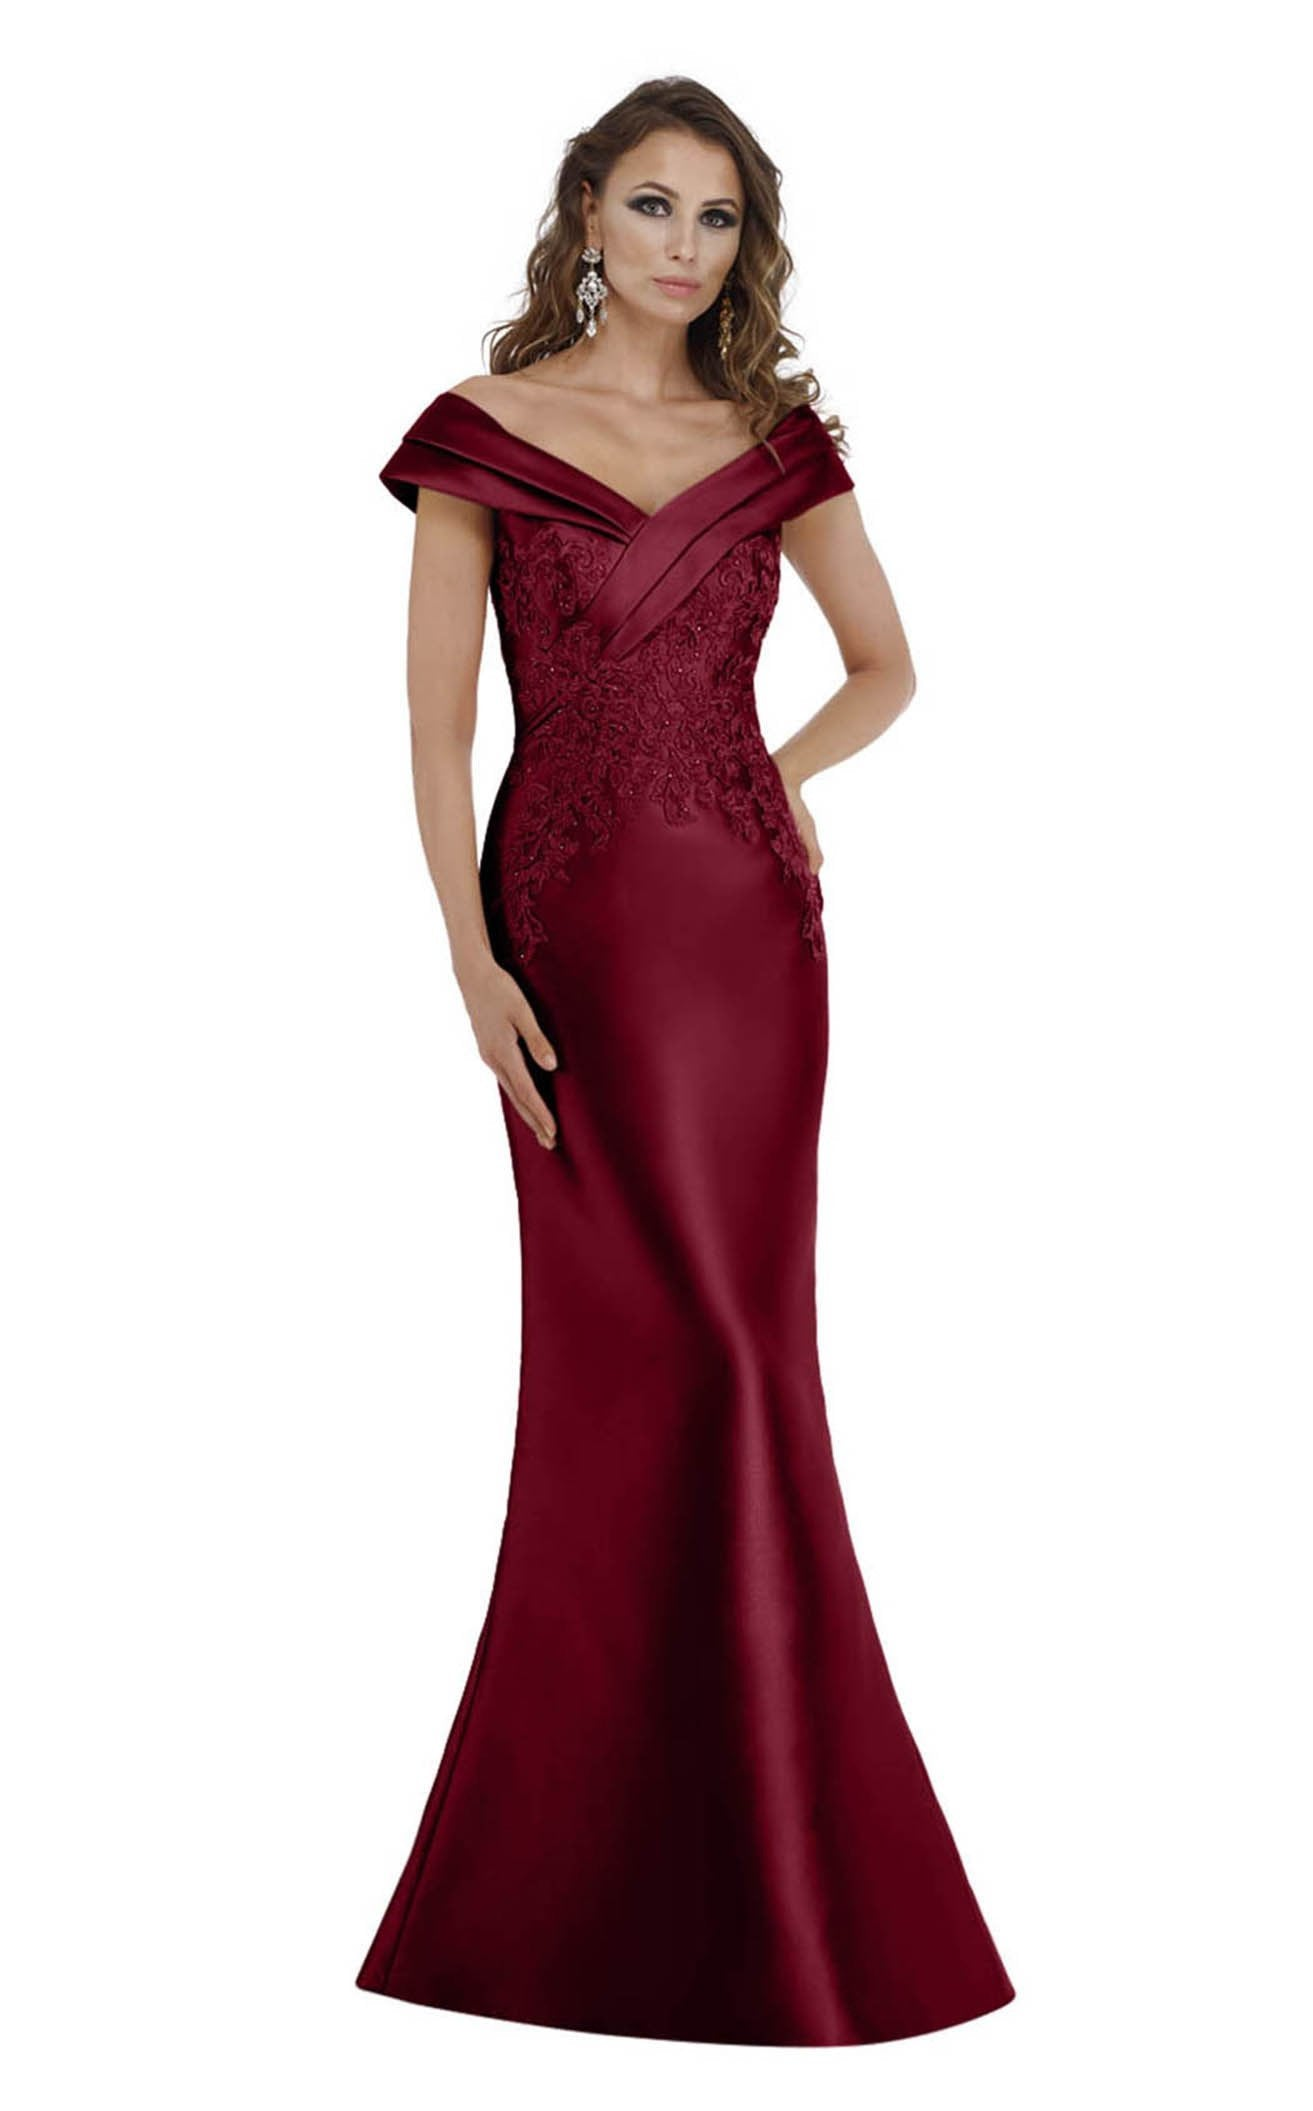 Gia Franco - Tiered Off-Shoulder Lace Appliqued Evening Gown 12005 In Red